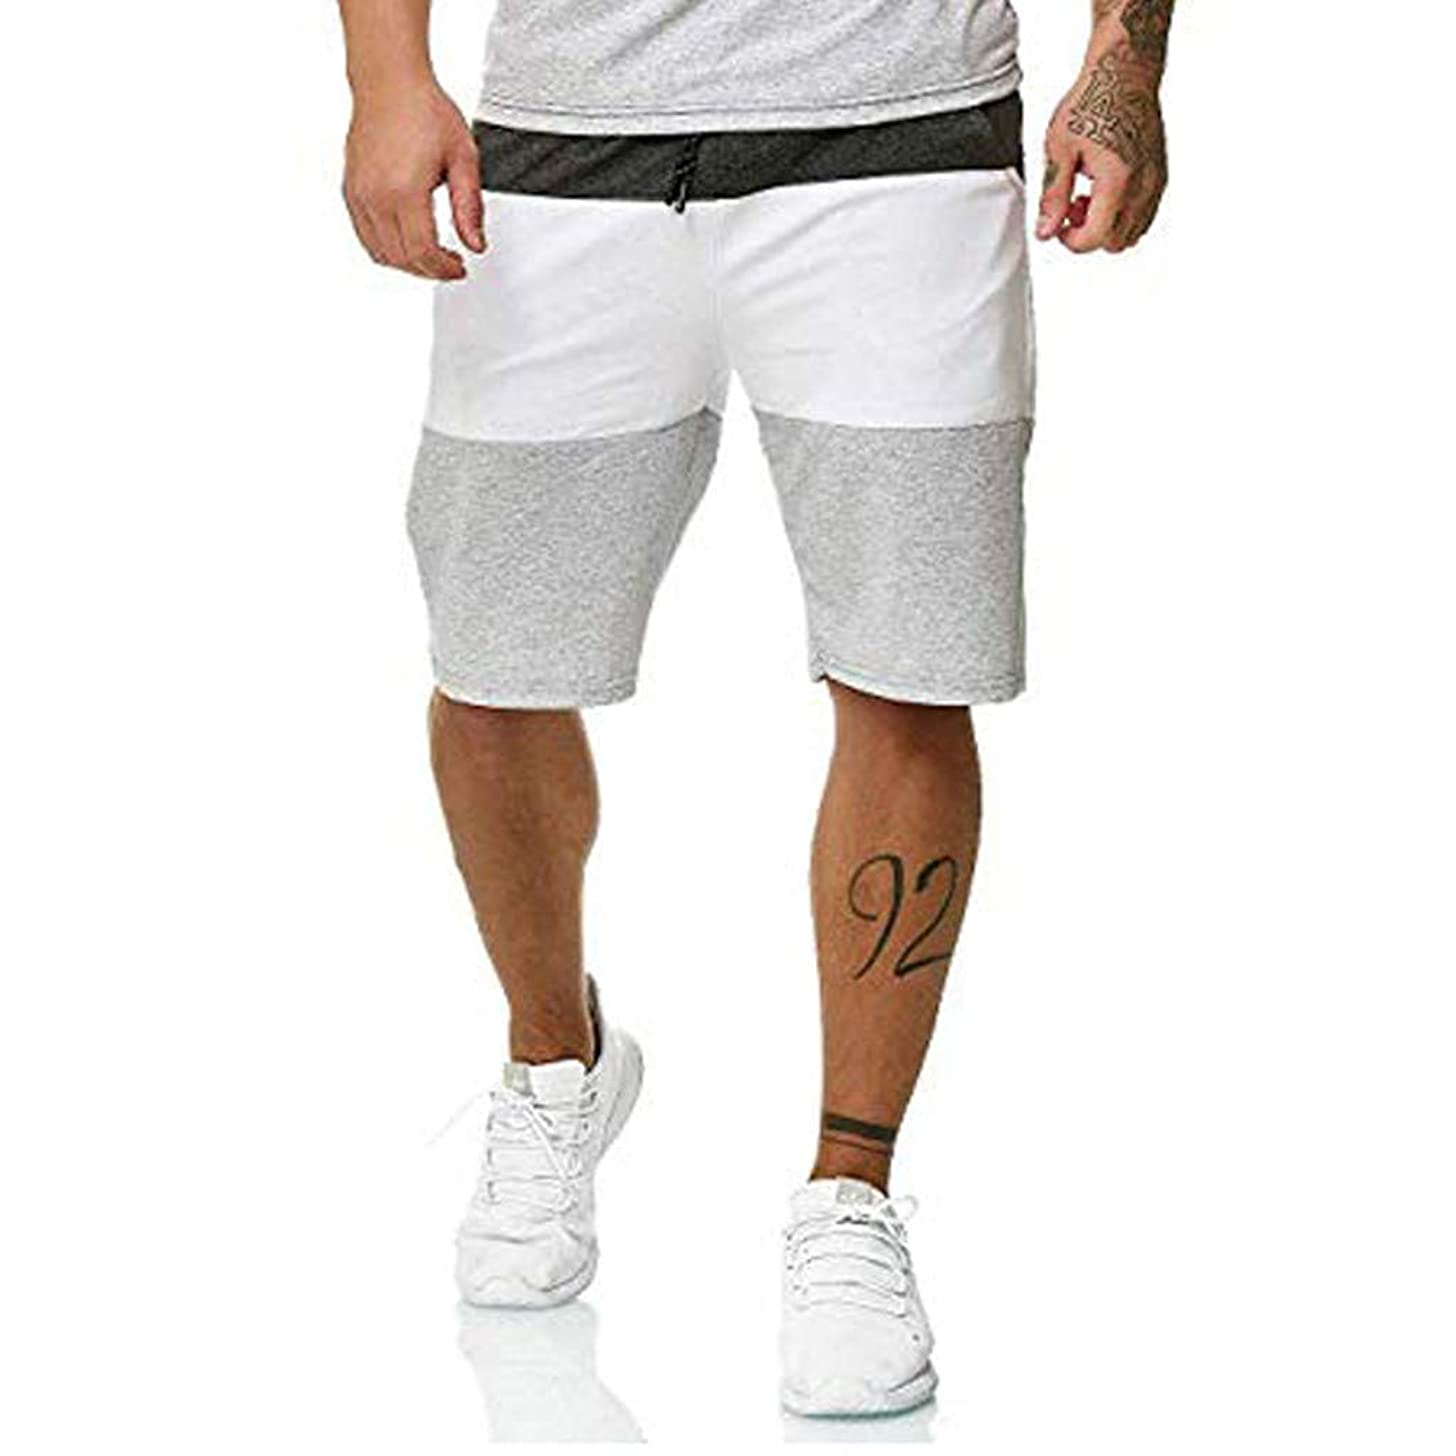 Men Gym Shorts, Allywit Summer Elastic Waist Sport Shorts Quick Dry Breathable Workout Running Short Pants